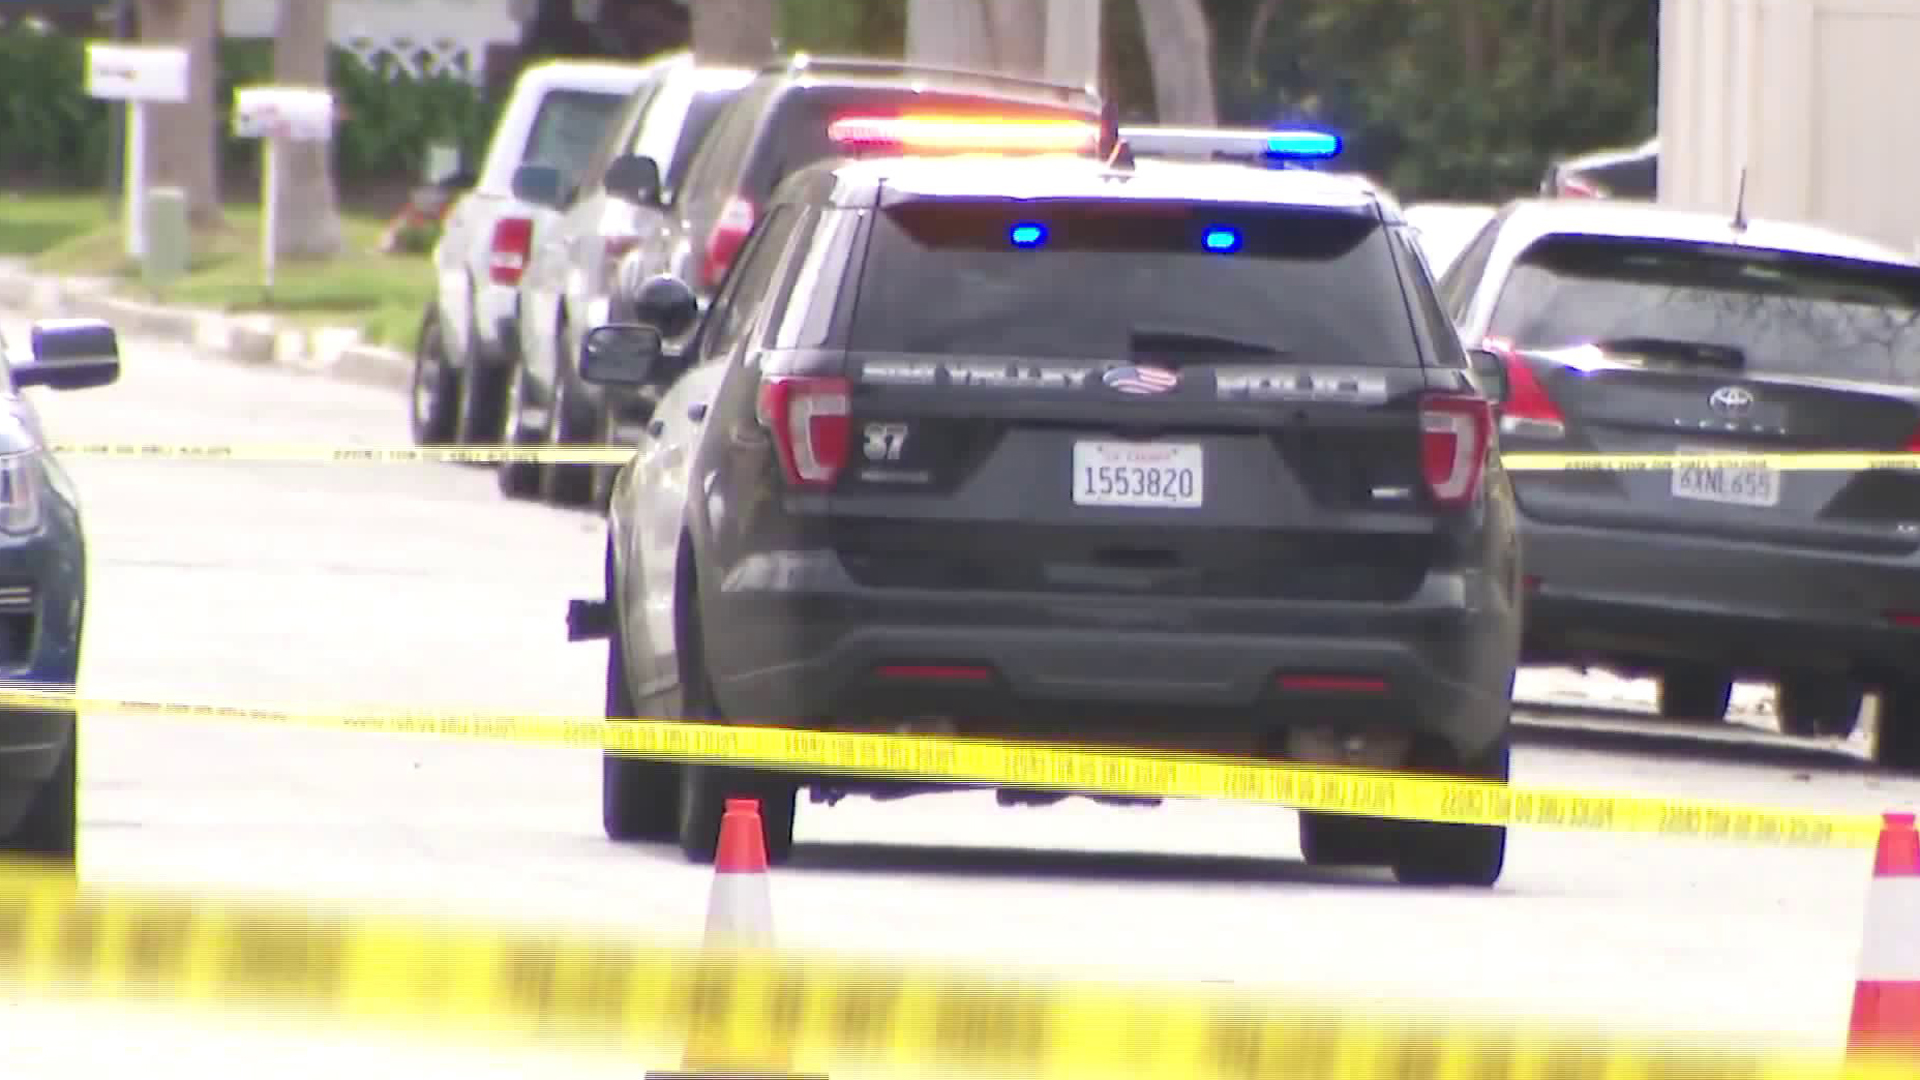 Police respond to a homicide scene in Simi Valley on Feb. 27, 2020. (KTLA)